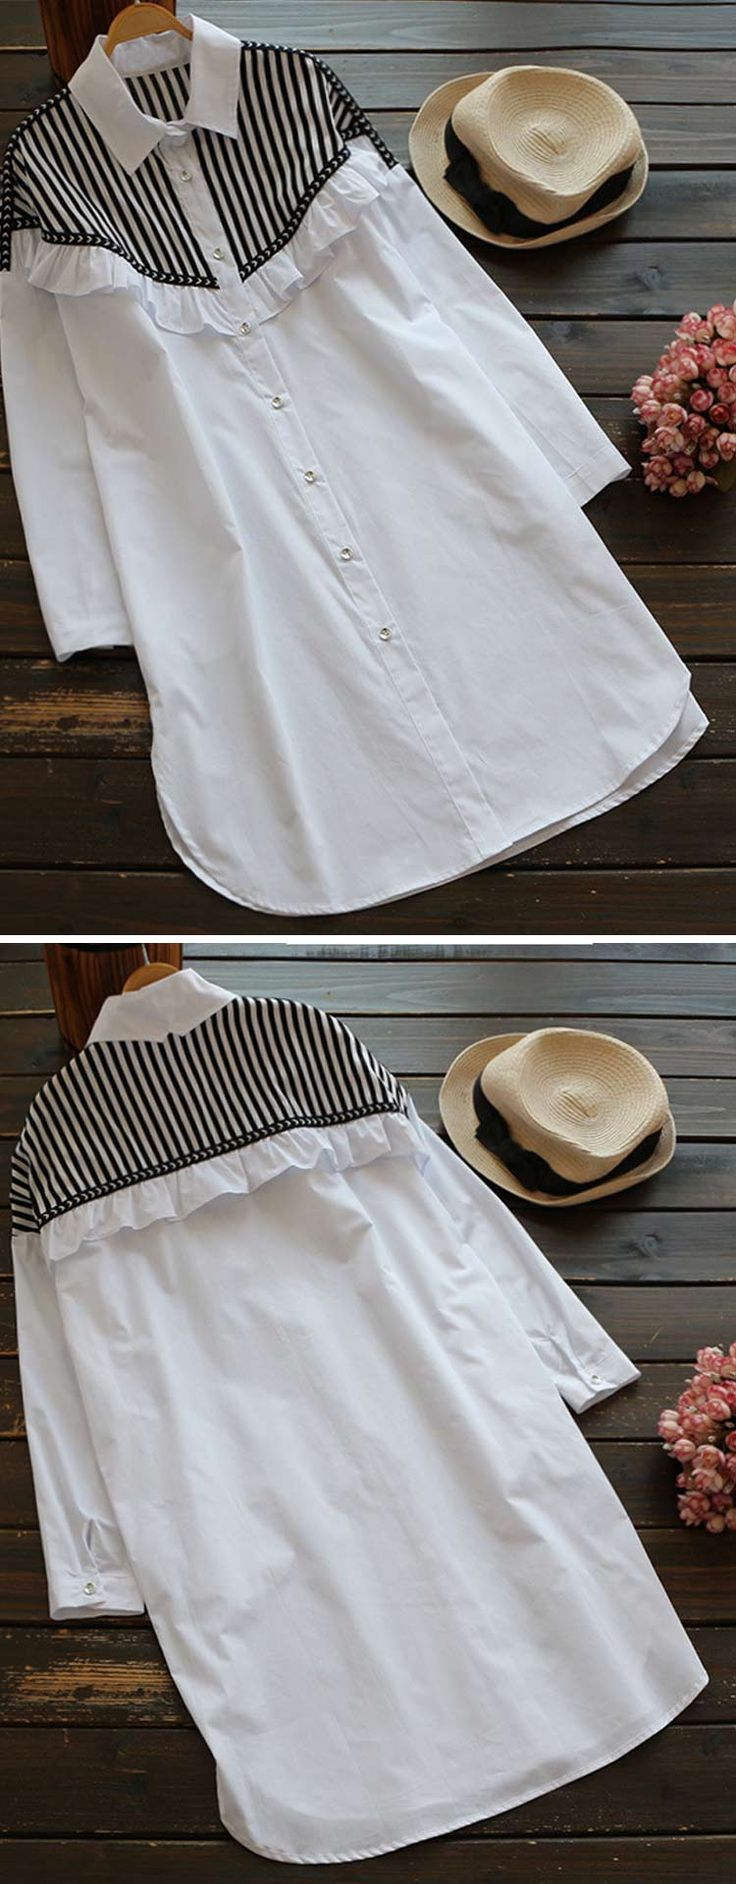 A ruffle/striped long shirt to have with free shipping Now! This shirt dress is cute and it does button all the way down! So chic look to get Only at Cupshe.com